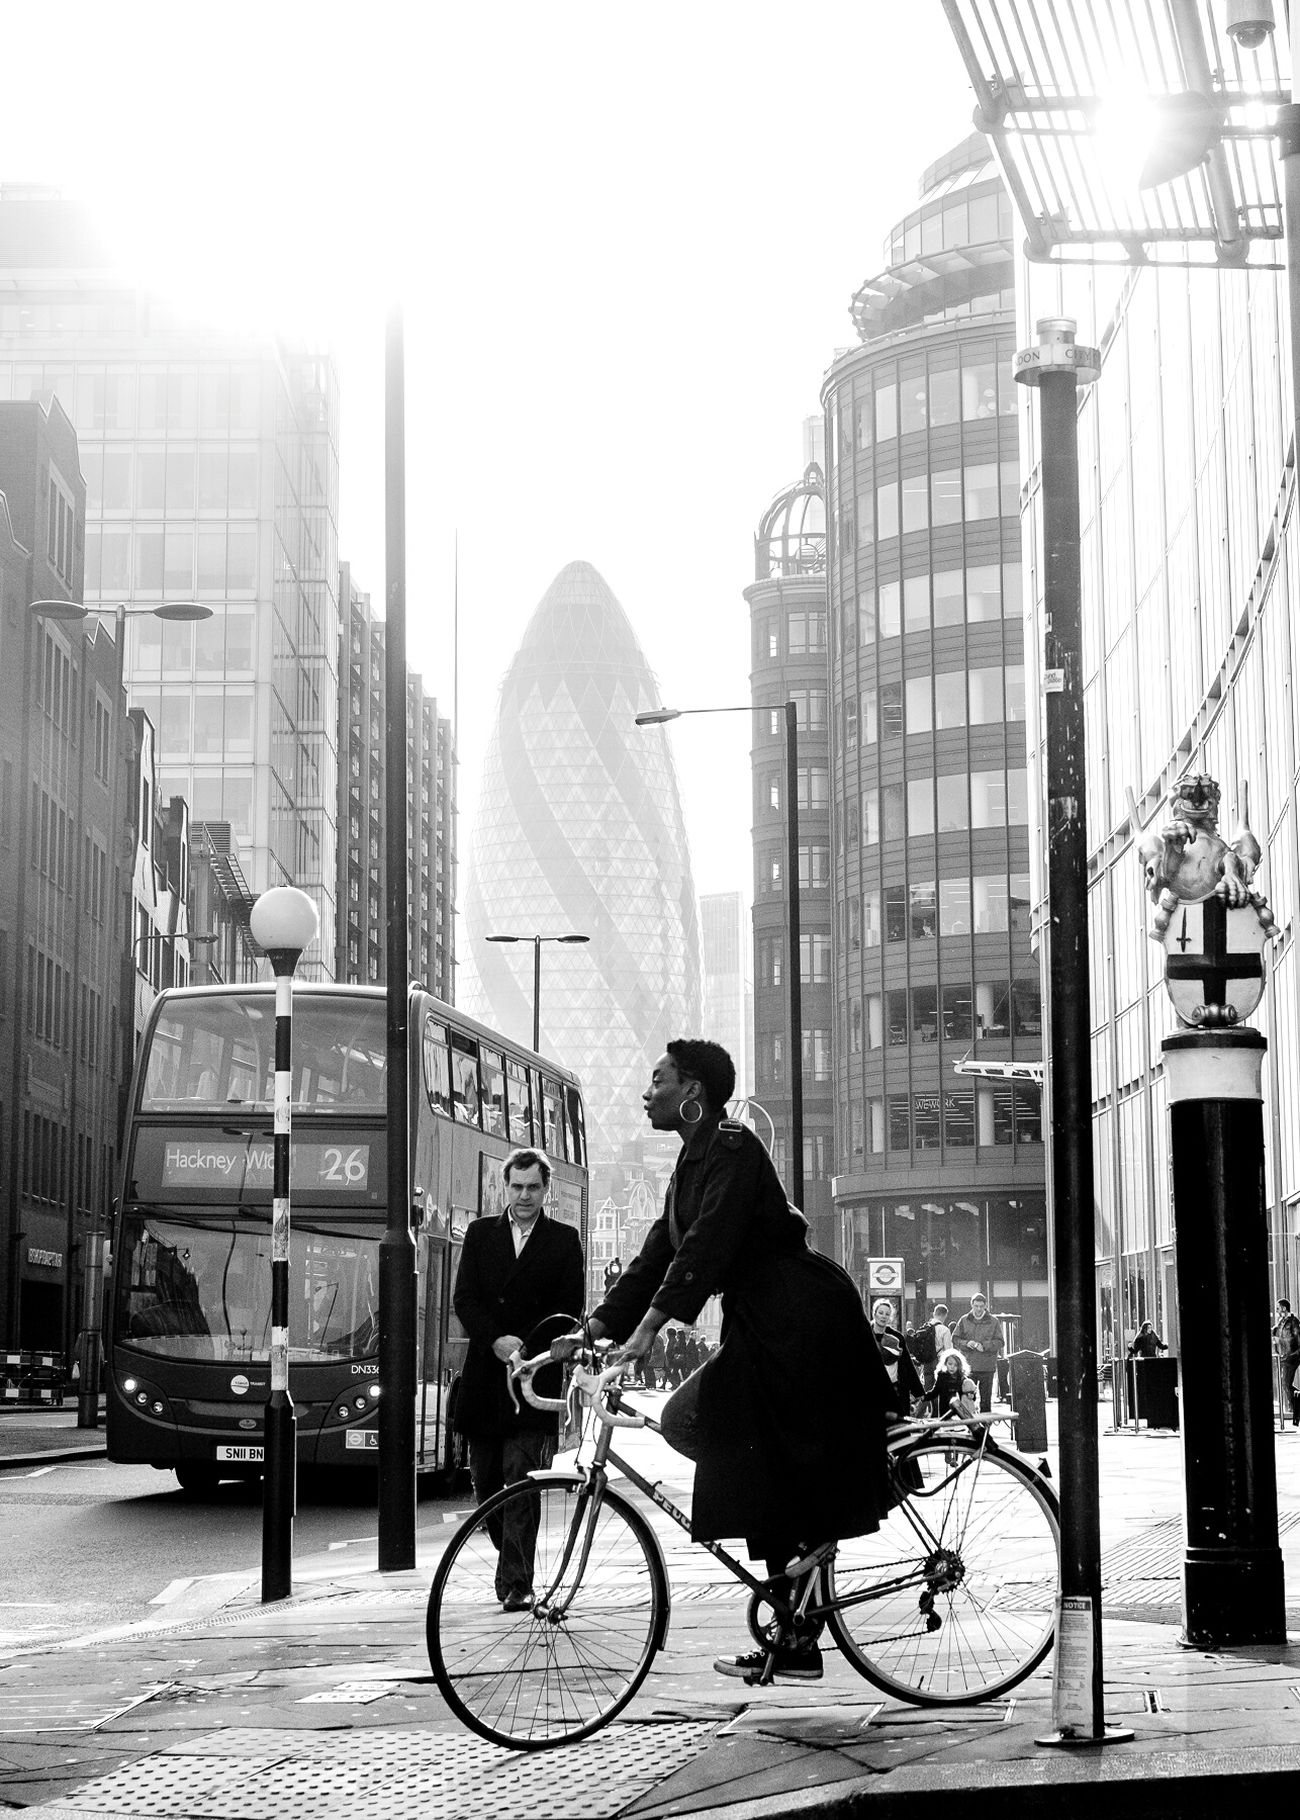 London Lifestyle Gherkin Gherkin Tower London London Streets Streetphotography Bicycle City Life Skyscraper Urban Road Architecture City Fujifilm FUJIFILM X-T1 Fujifilm_xseries Black And White